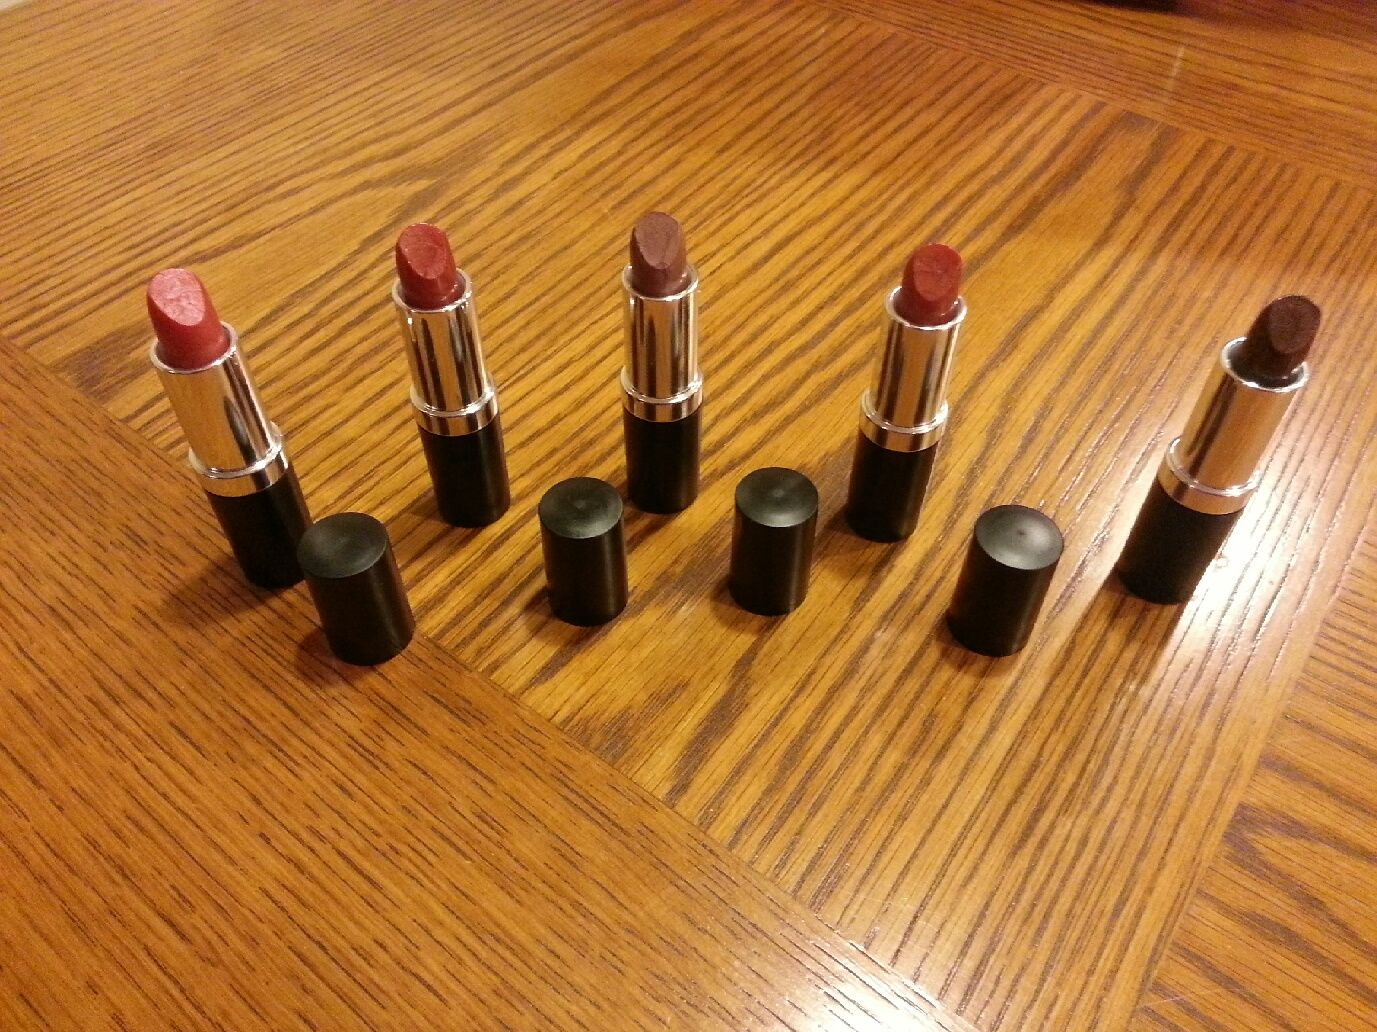 2012 Lipstick collection